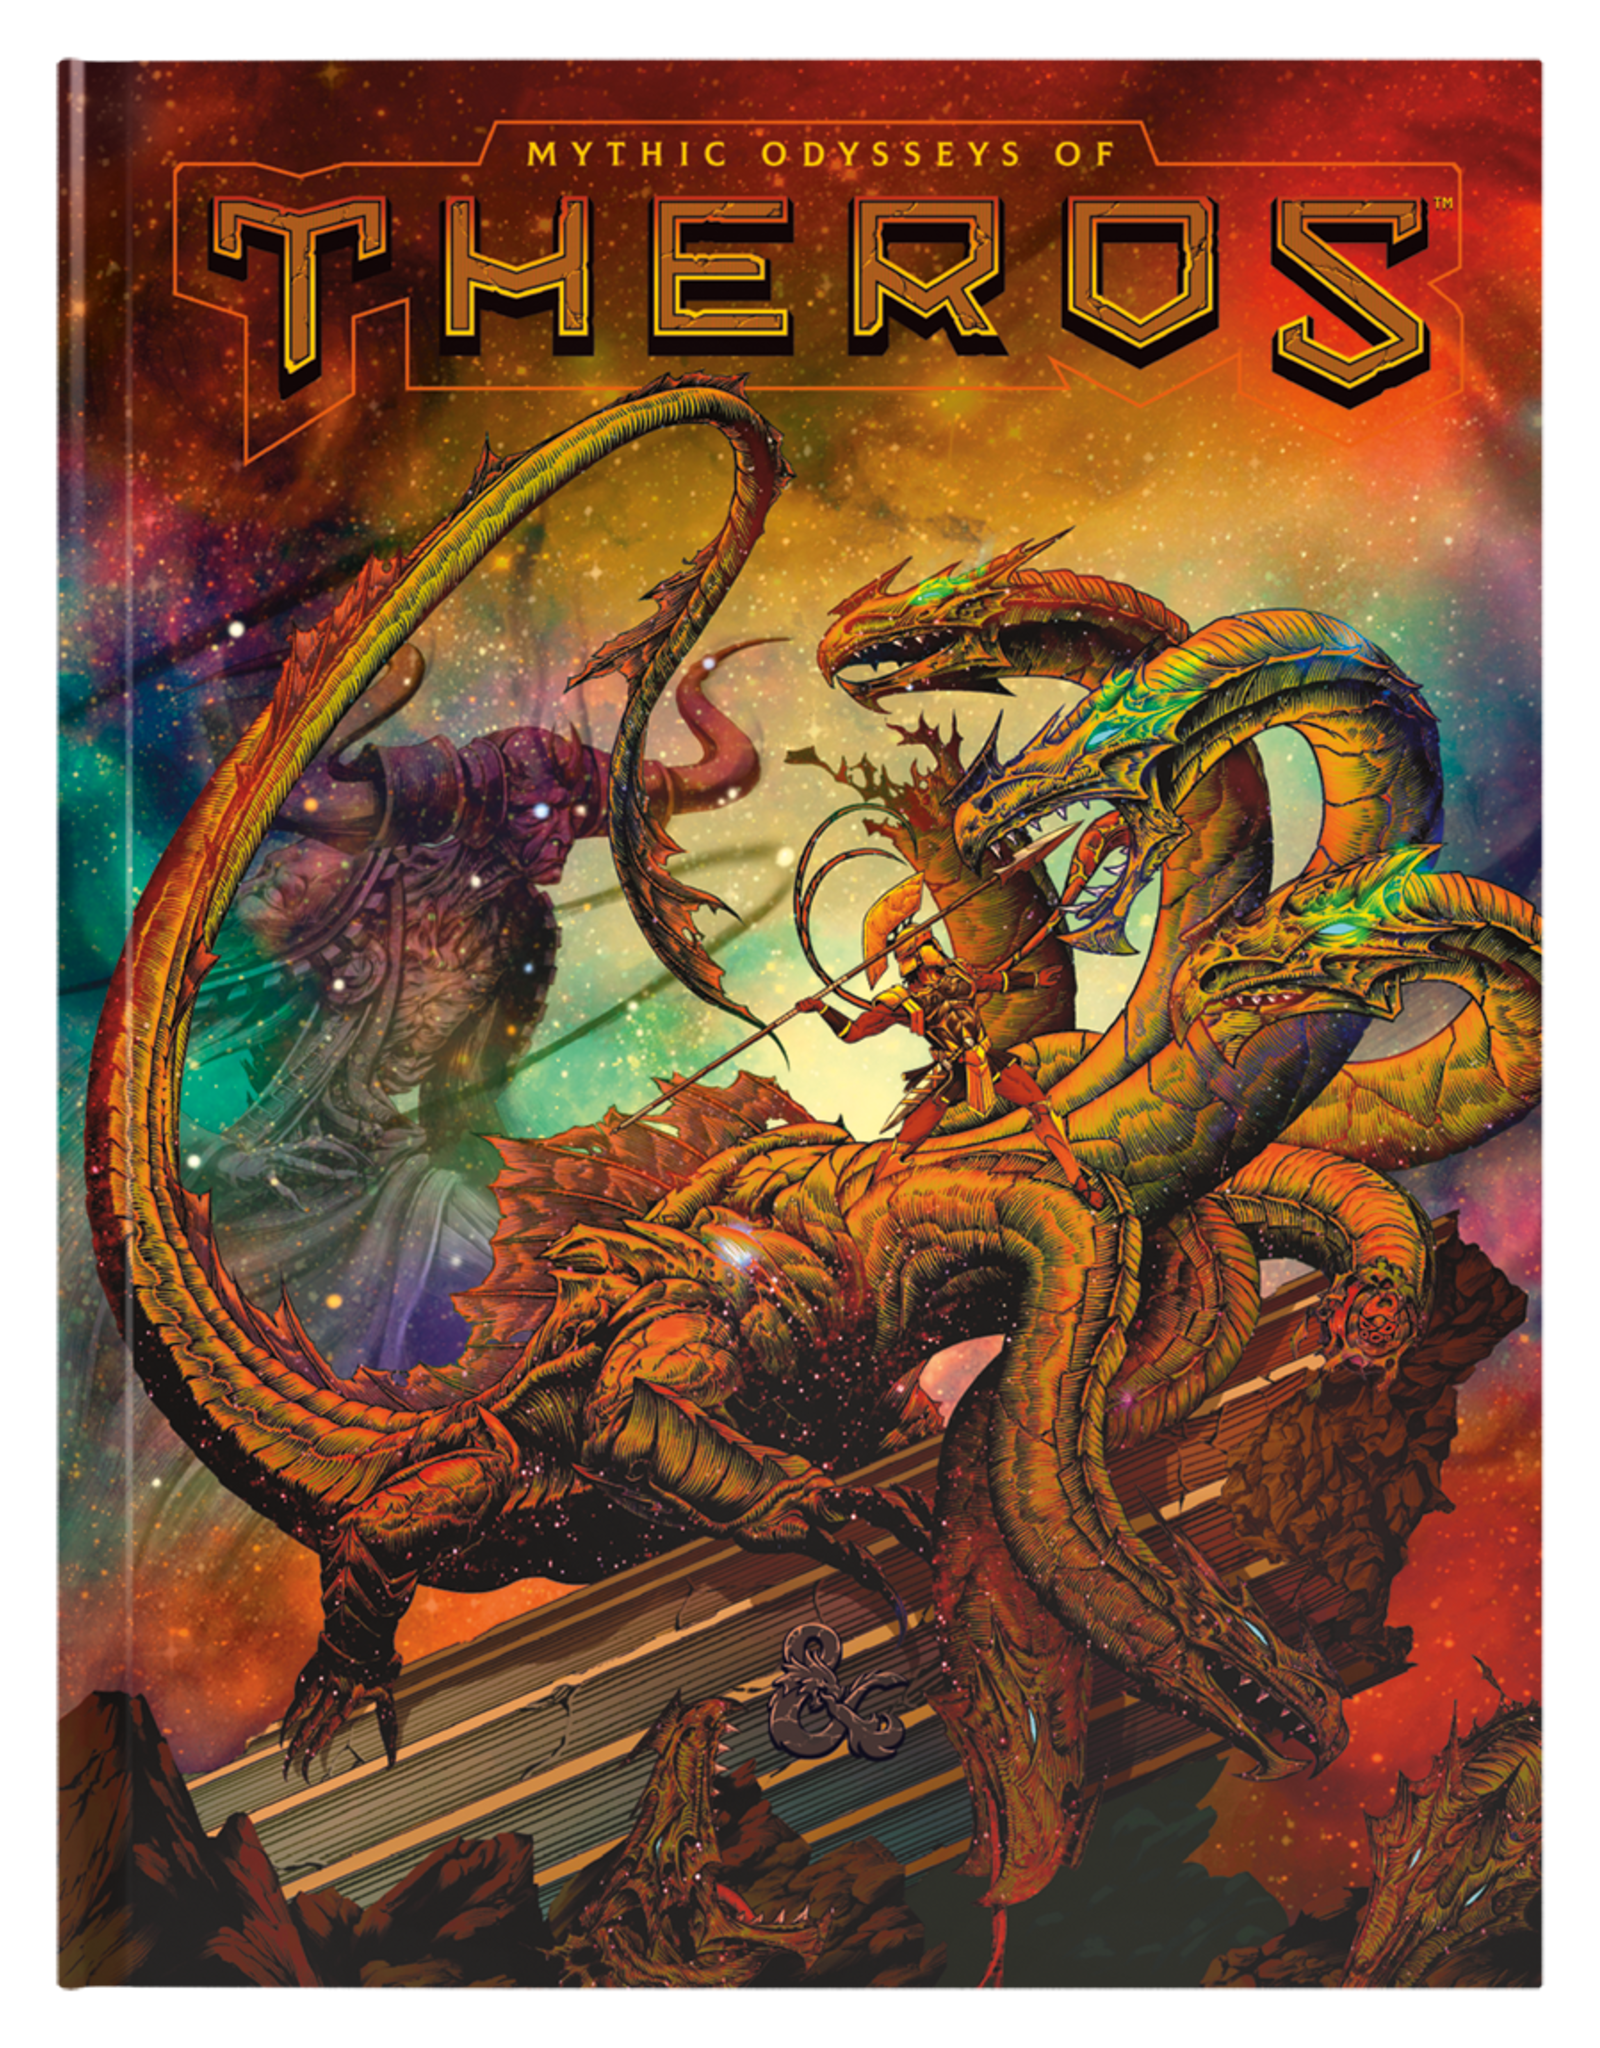 Dungeons & Dragons D&D 5th: Mythic Odysseys of Theros Alternate Cover